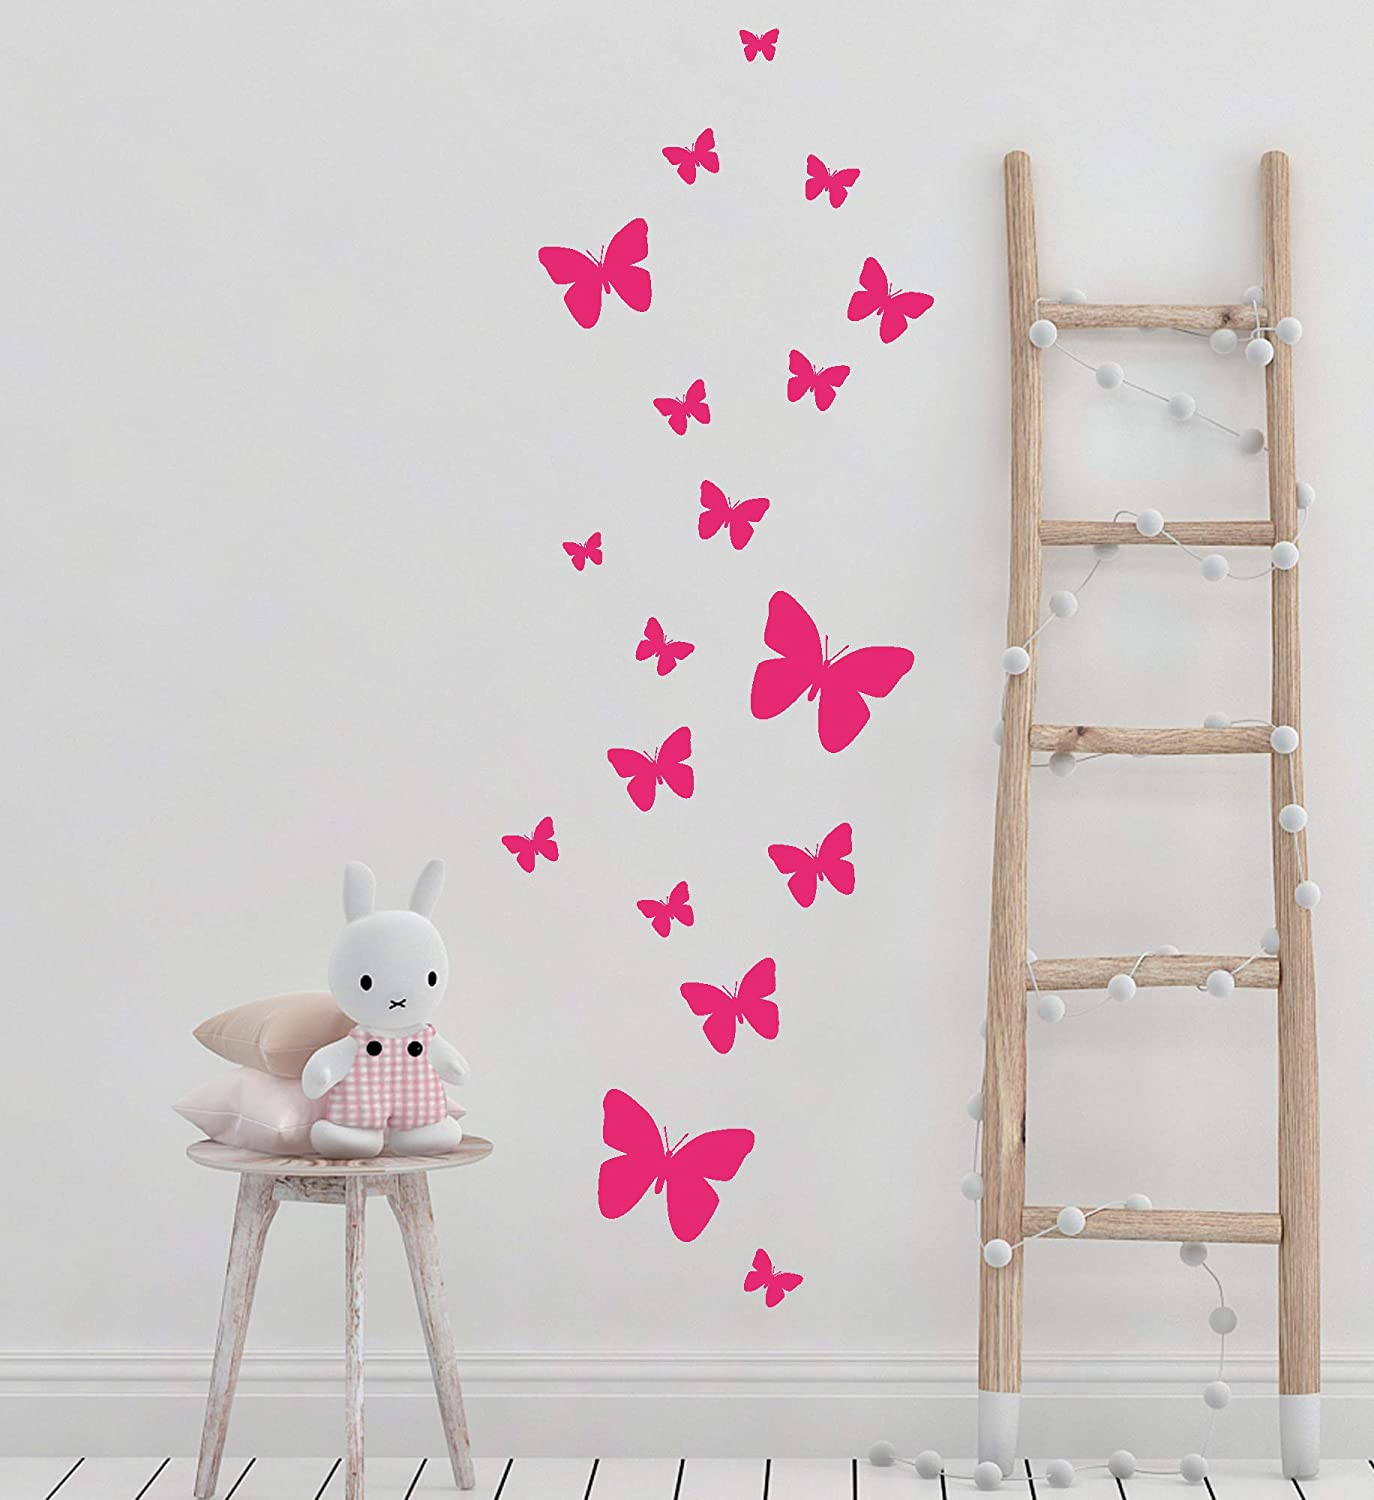 Butterfly Wall Decals for Girls Bedroom (26) Girls Room Decor Stickers of Butterflies Bedroom Wall Art Vinyl Peel & Stick Wall Stickers Birthday Party Decoration Present Teen Toddler (Hot Pink)